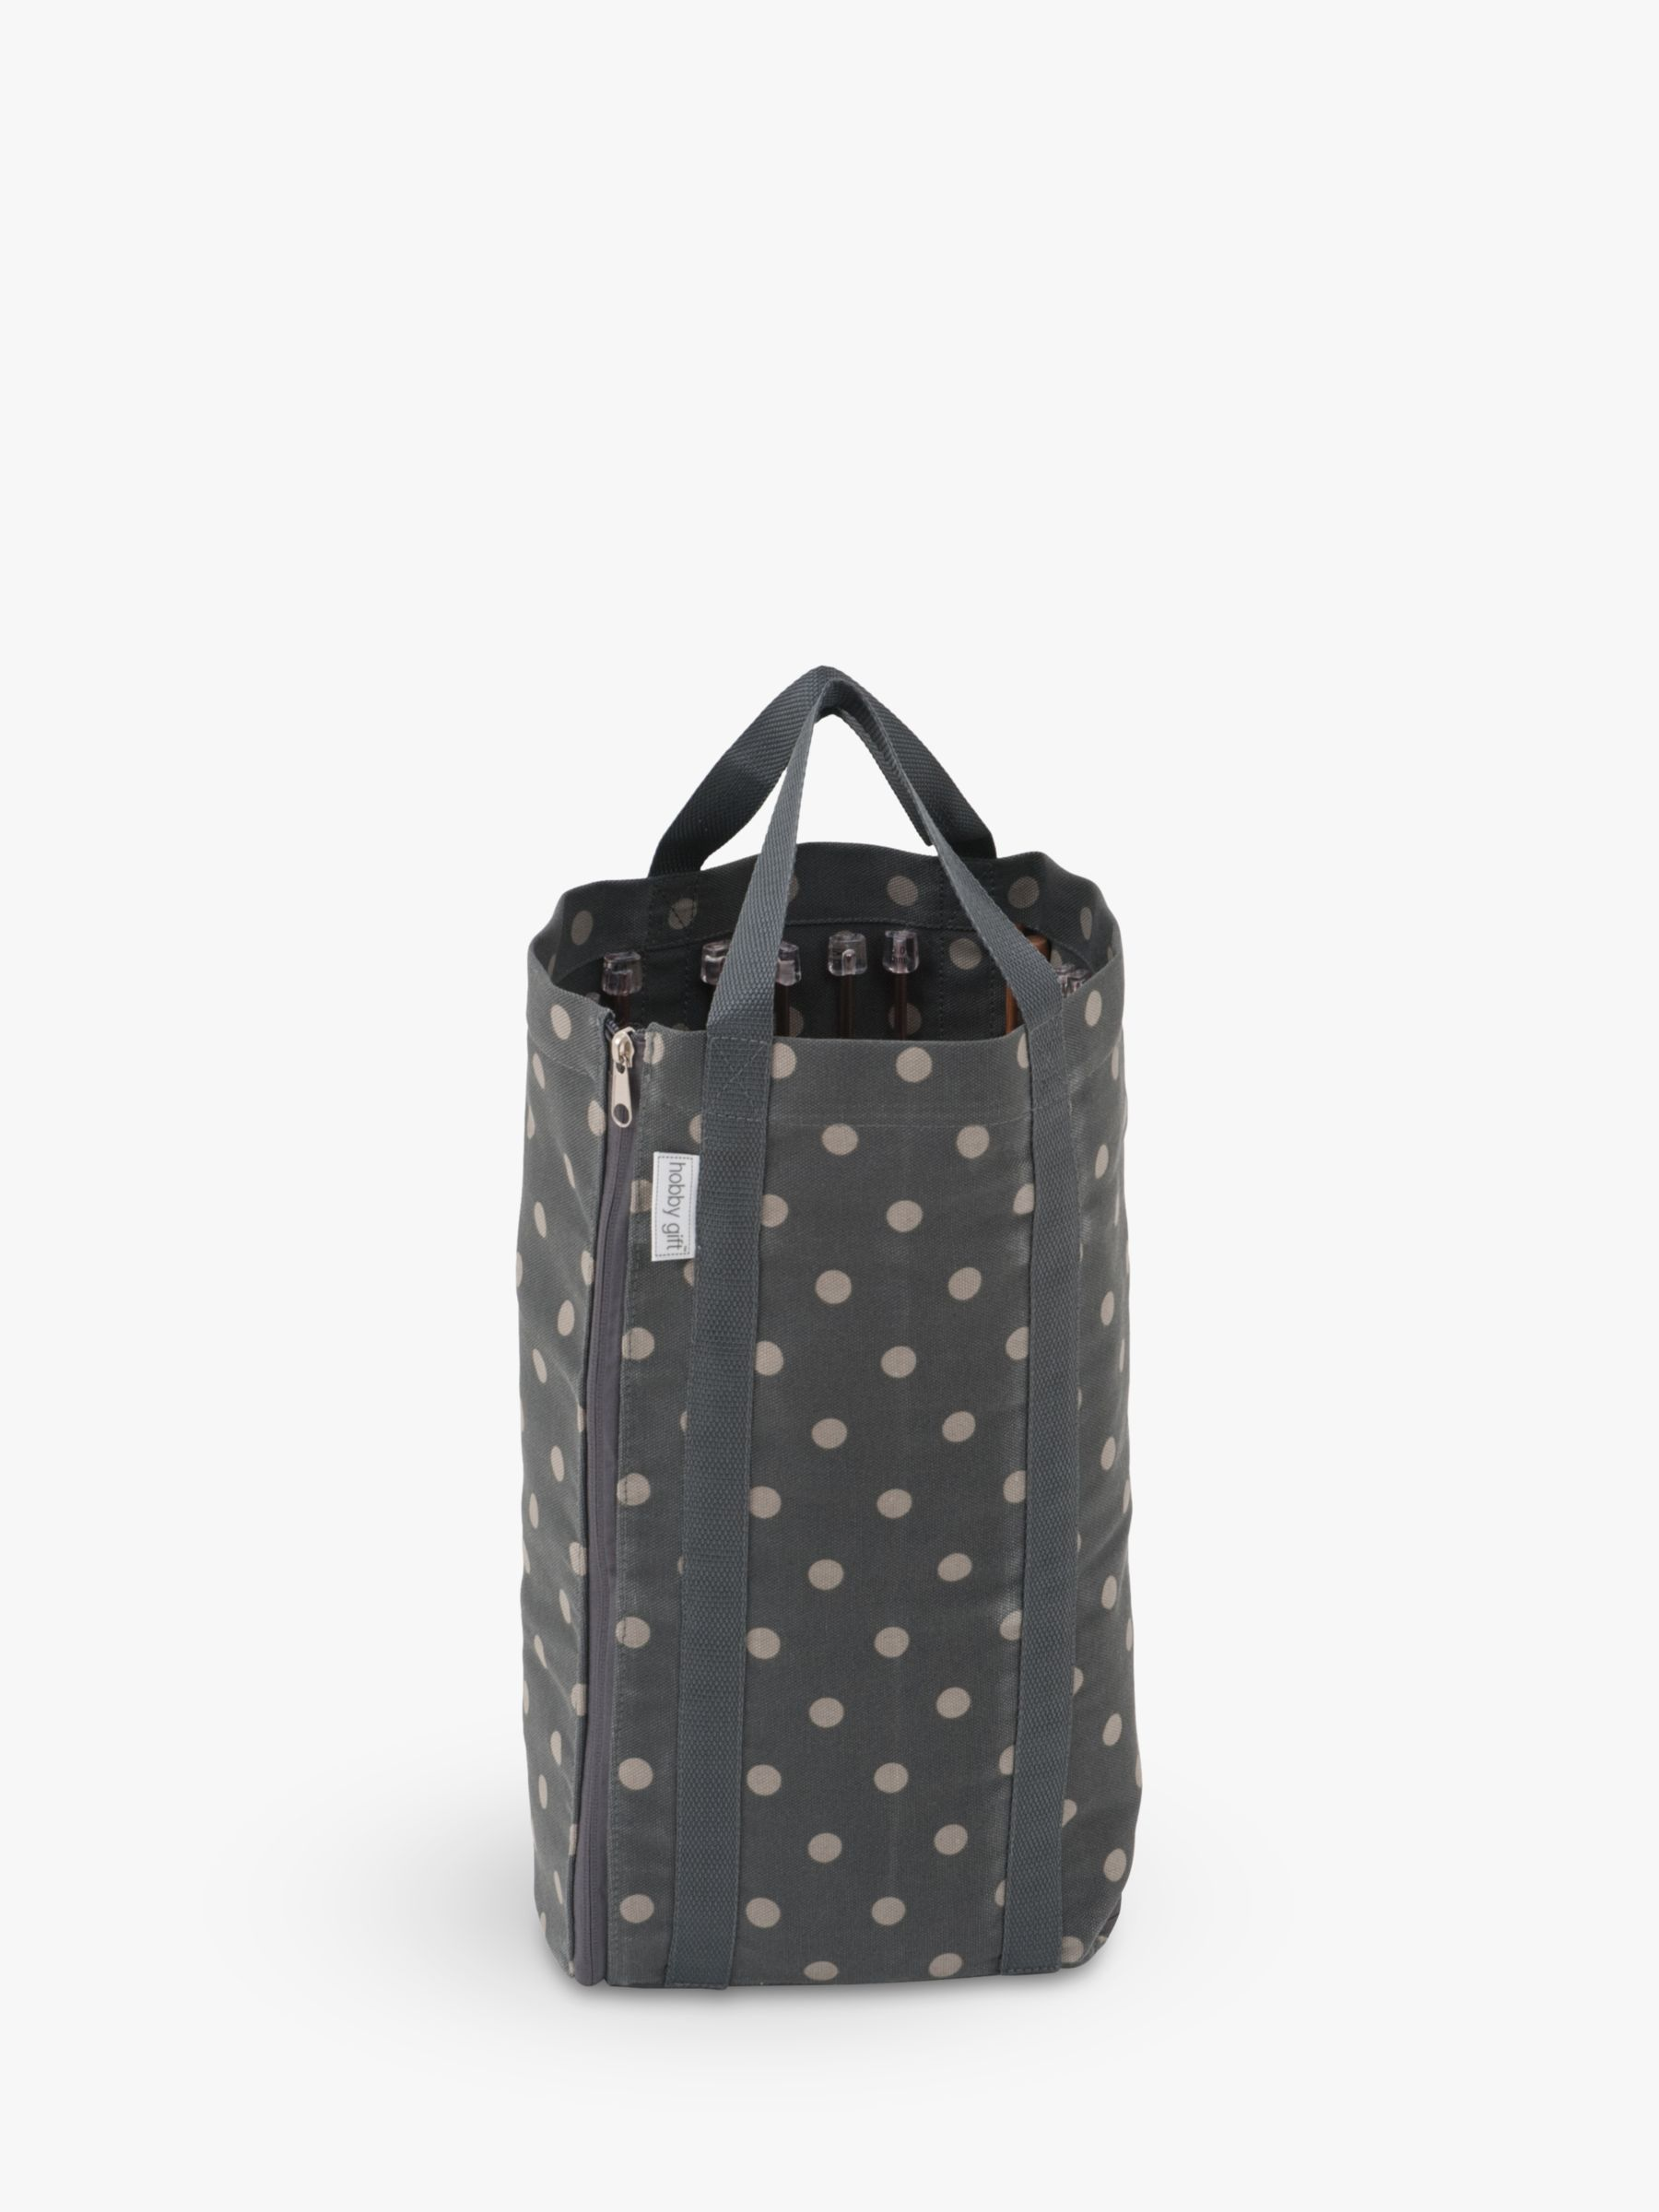 Groves Groves Reversible Knitting Craft Bag, Grey